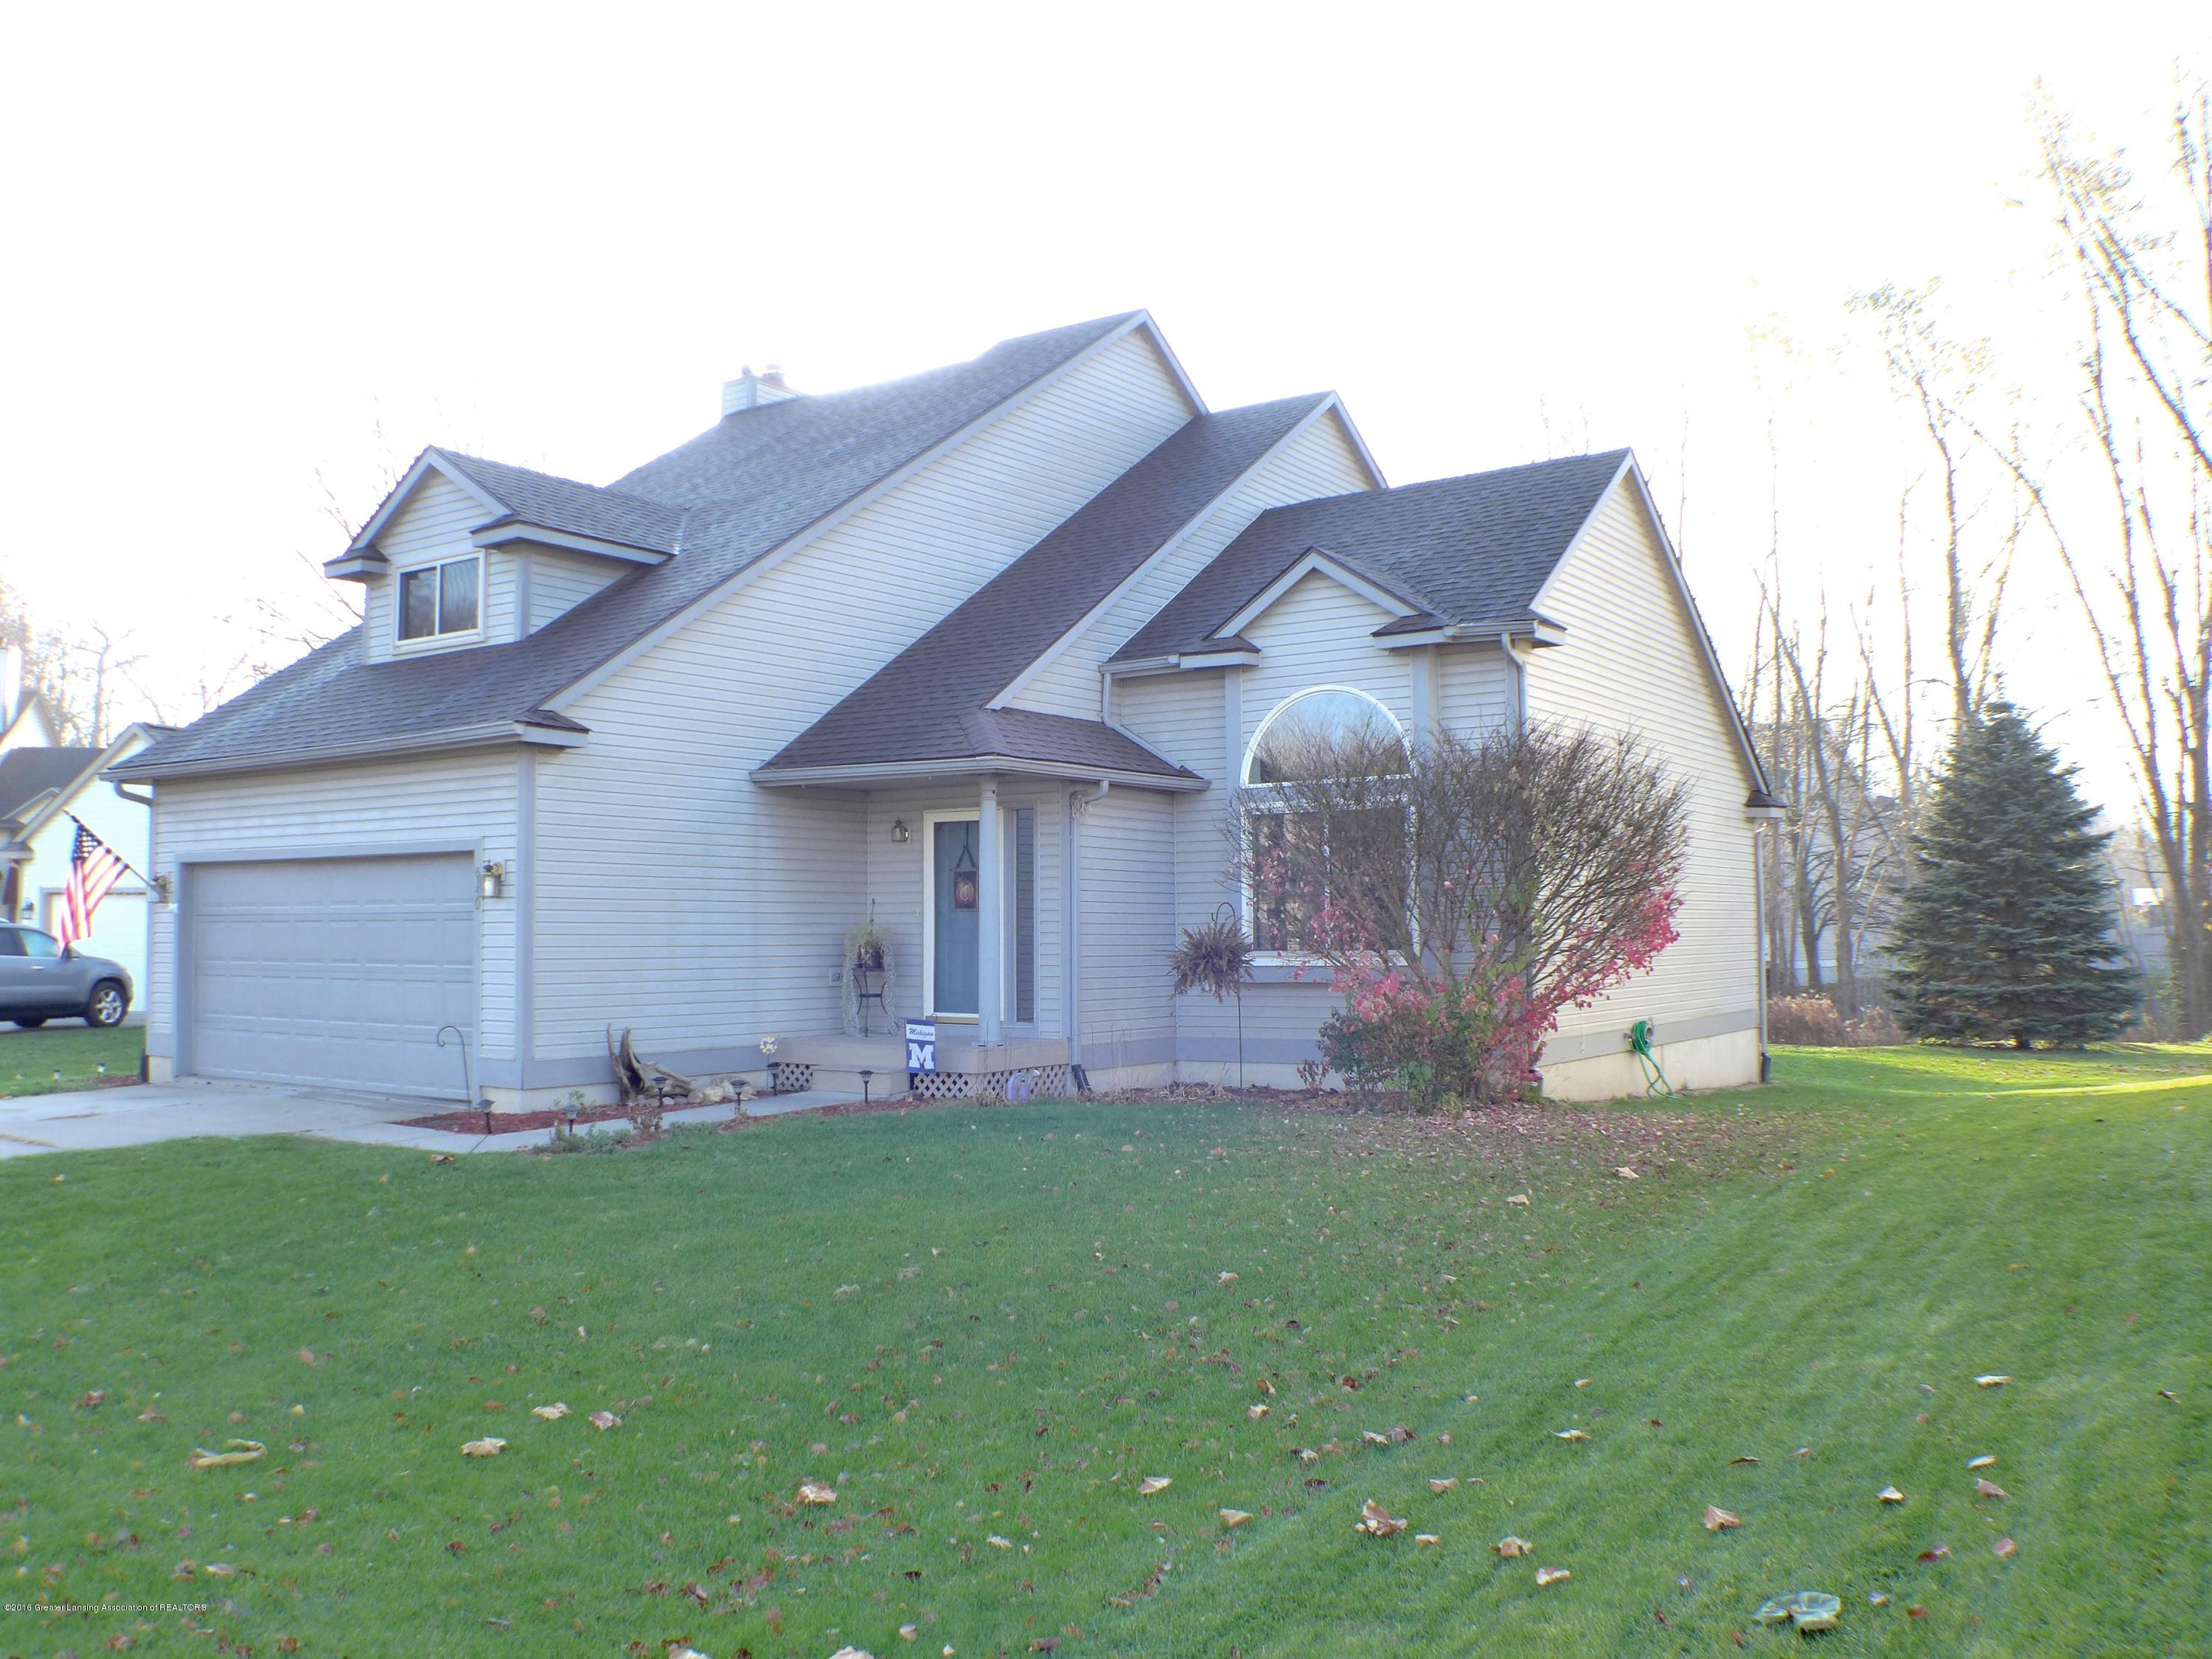 640 Winding River Way - Exterior Front - 3